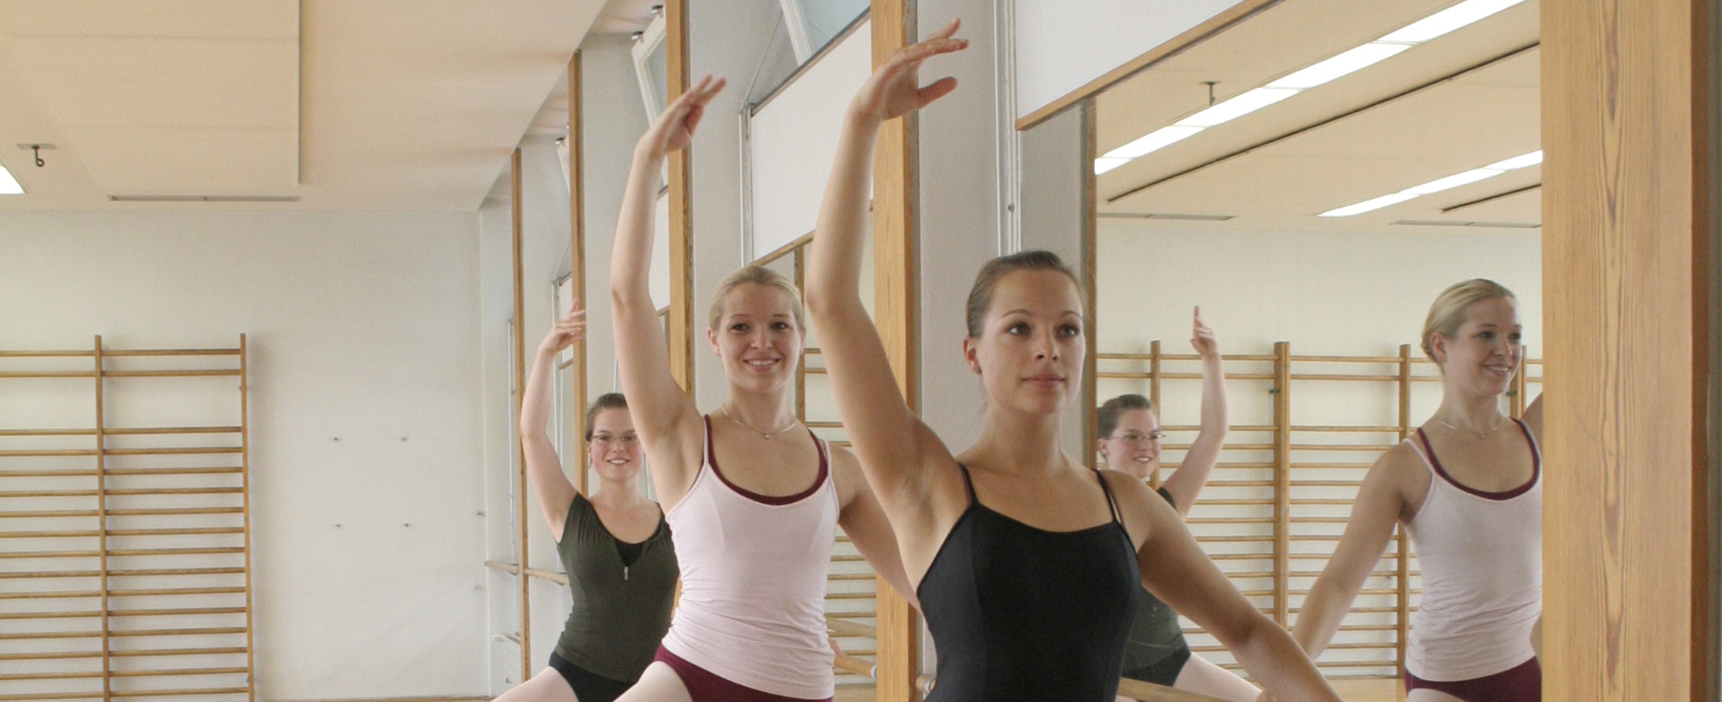 Ballet dancers at the barre